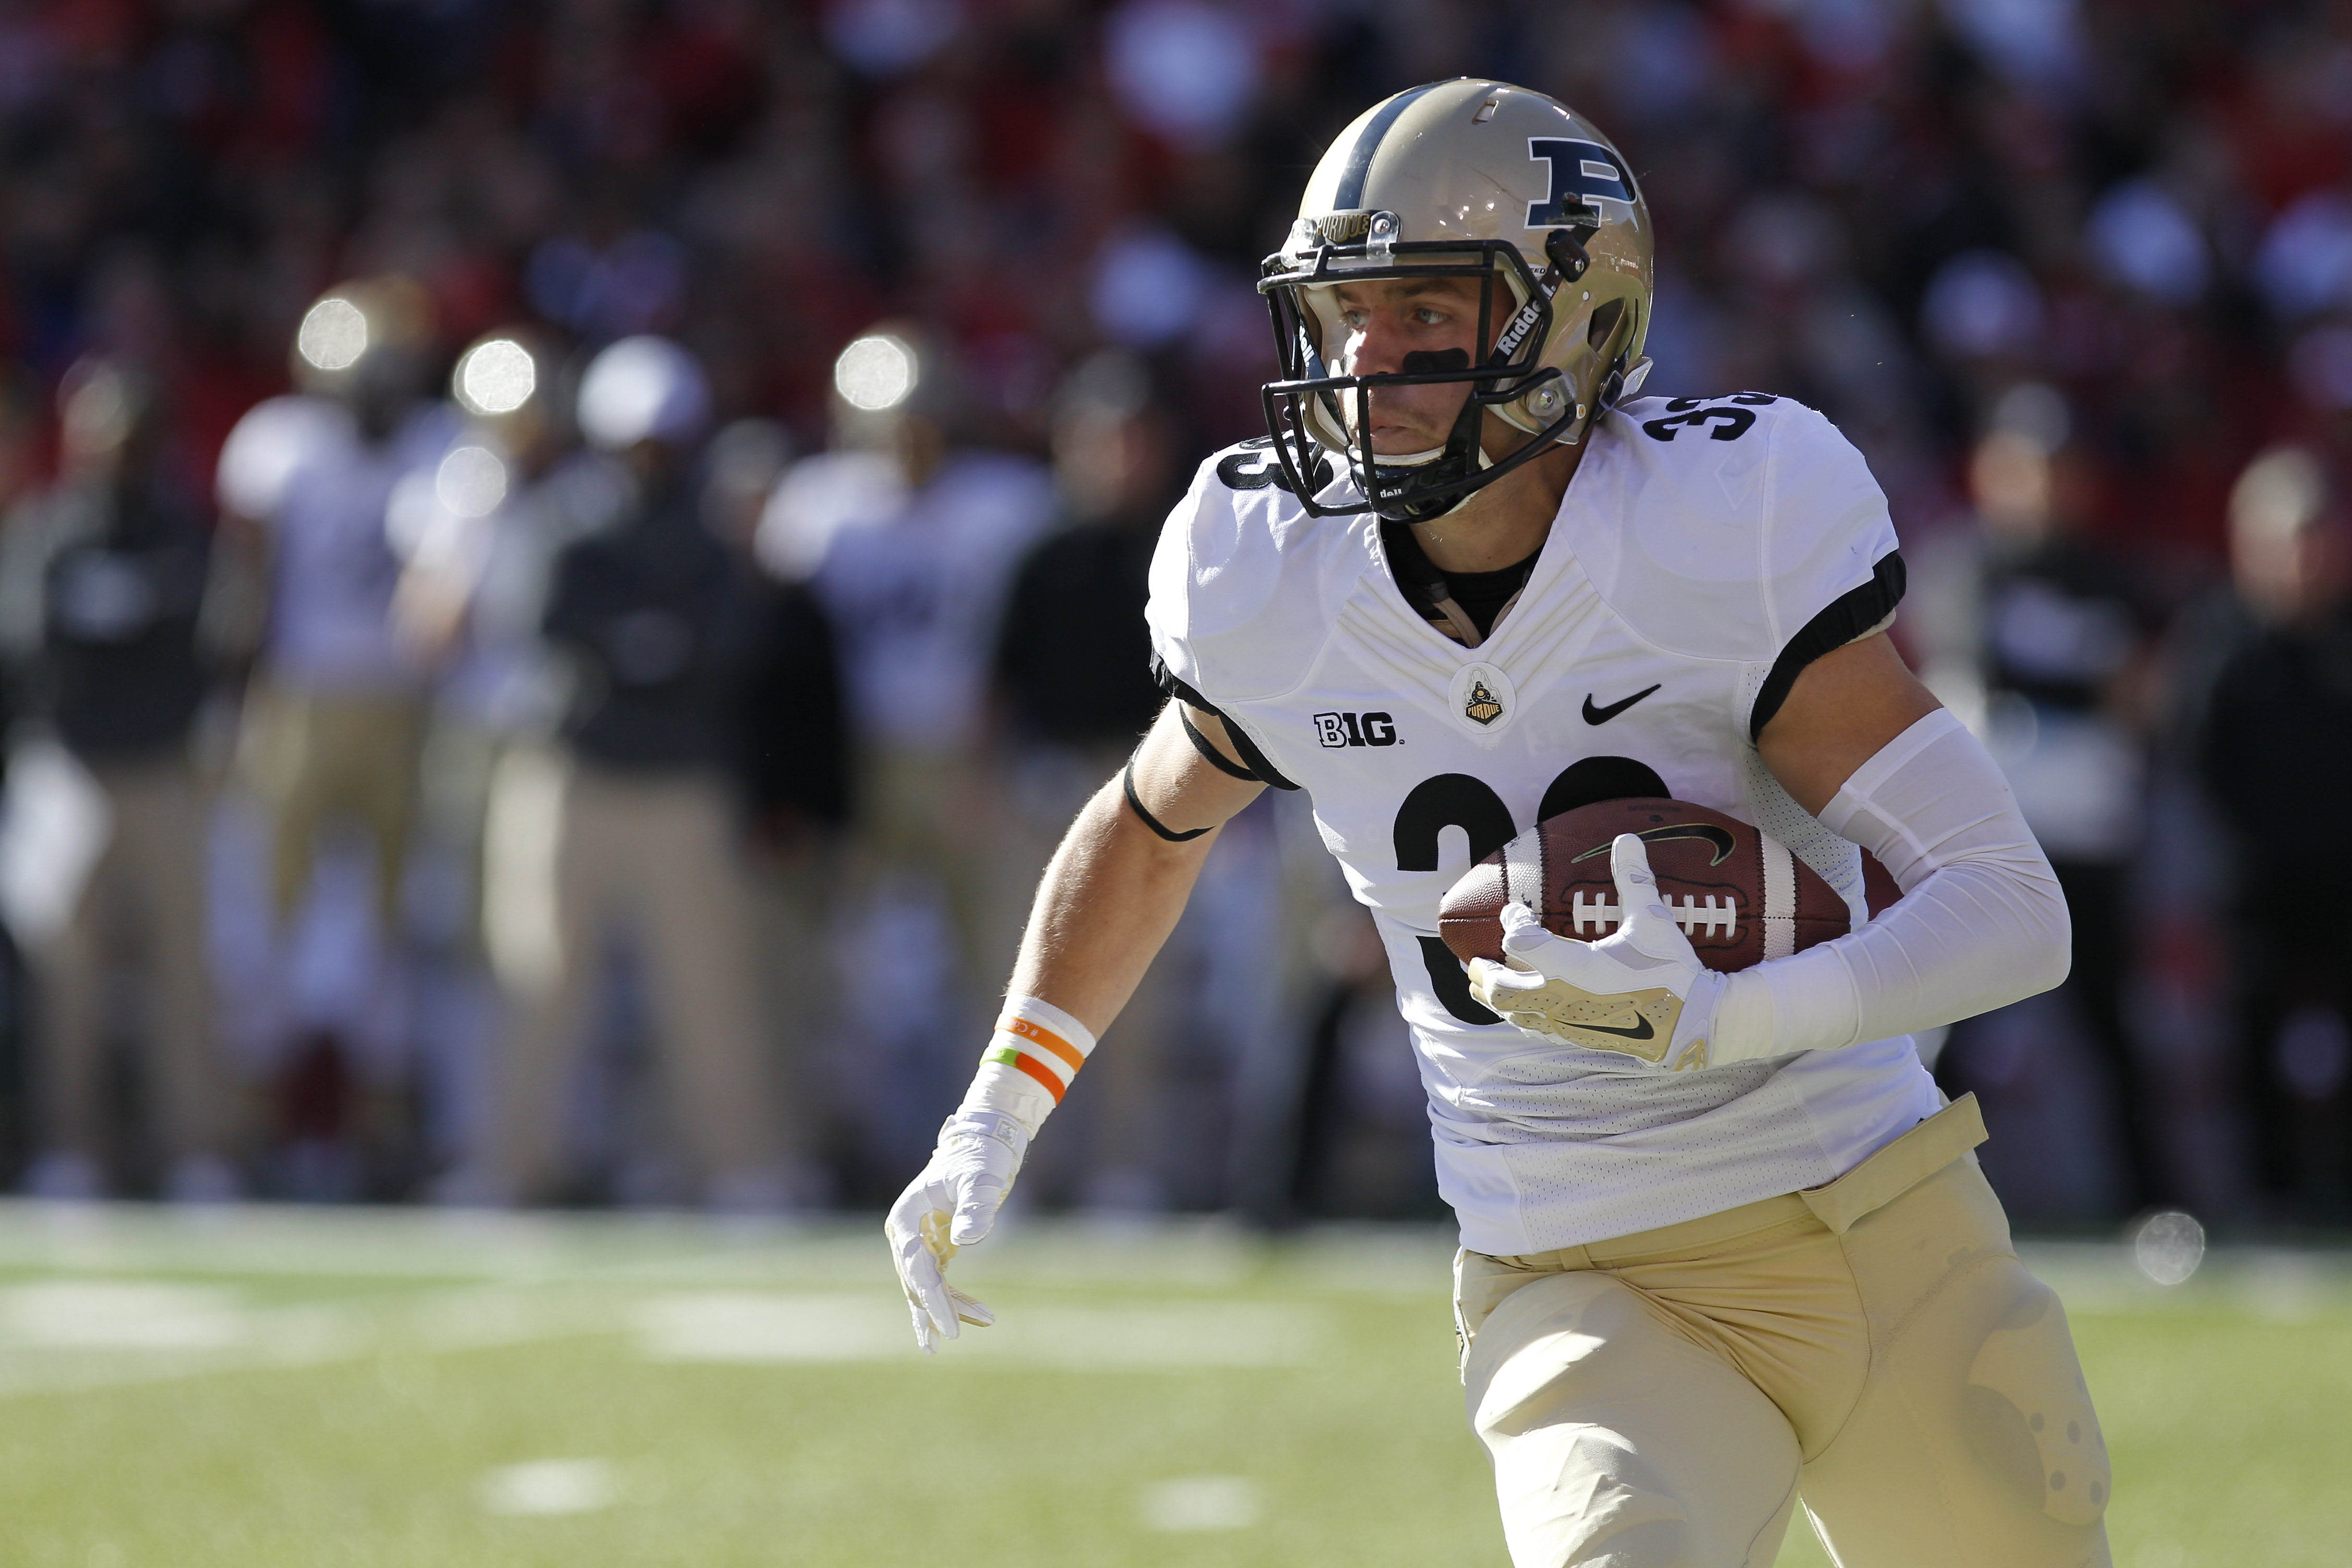 purdue football - photo #25